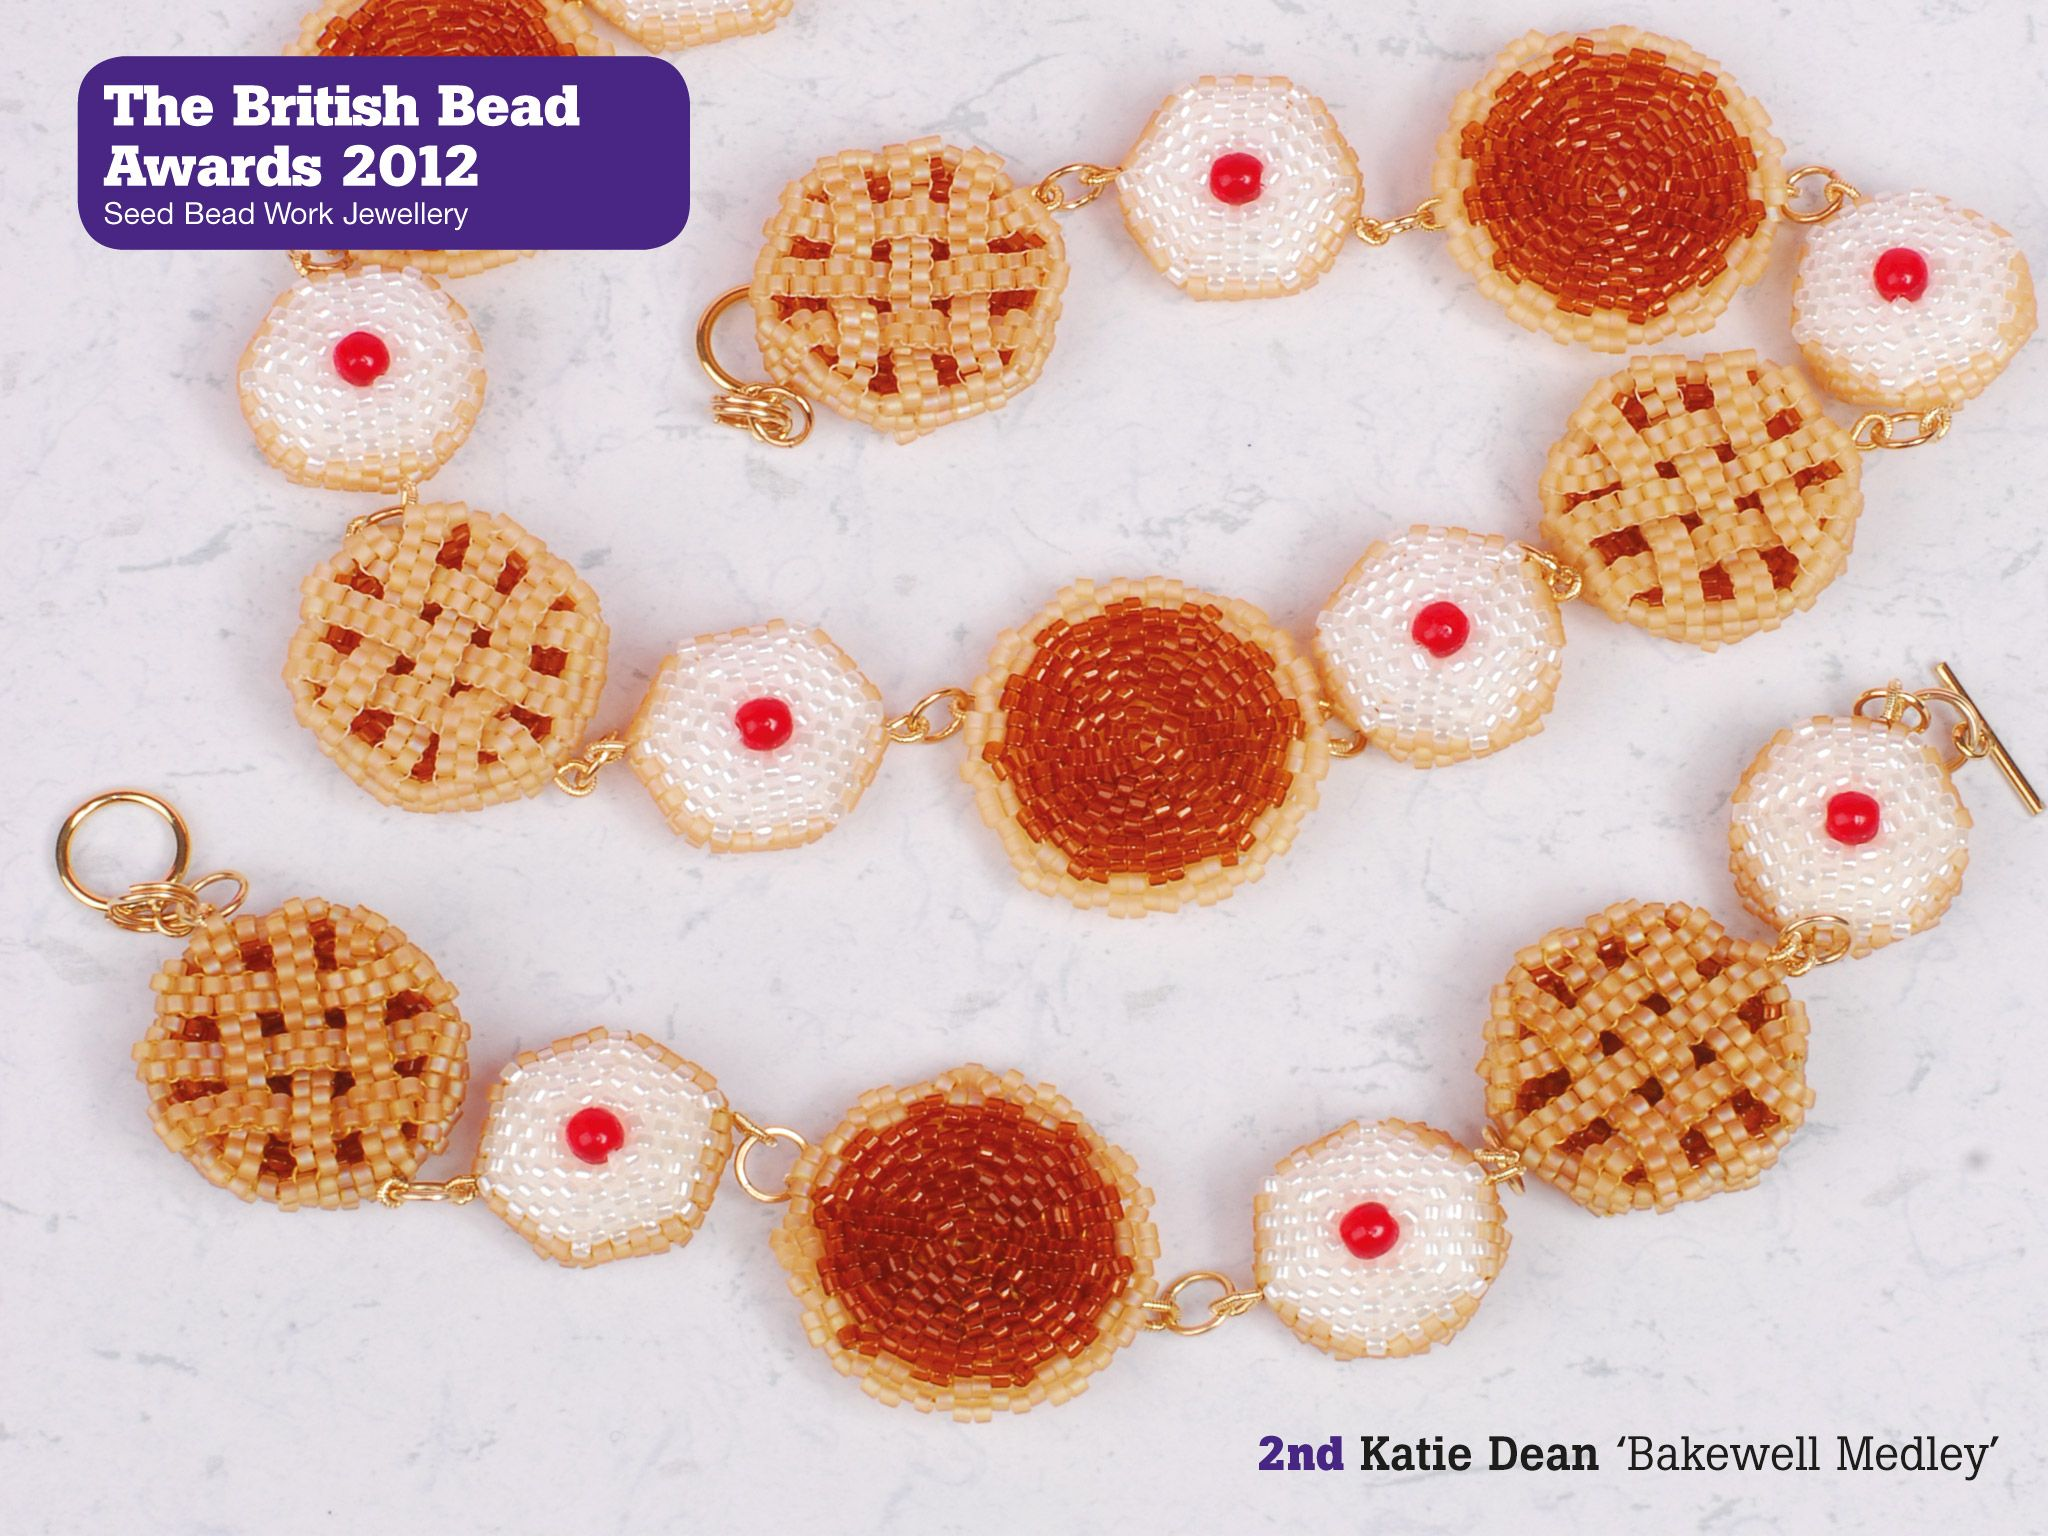 Bakewell Medley by Katie Dean 2nd Place British Bead Awards 2012